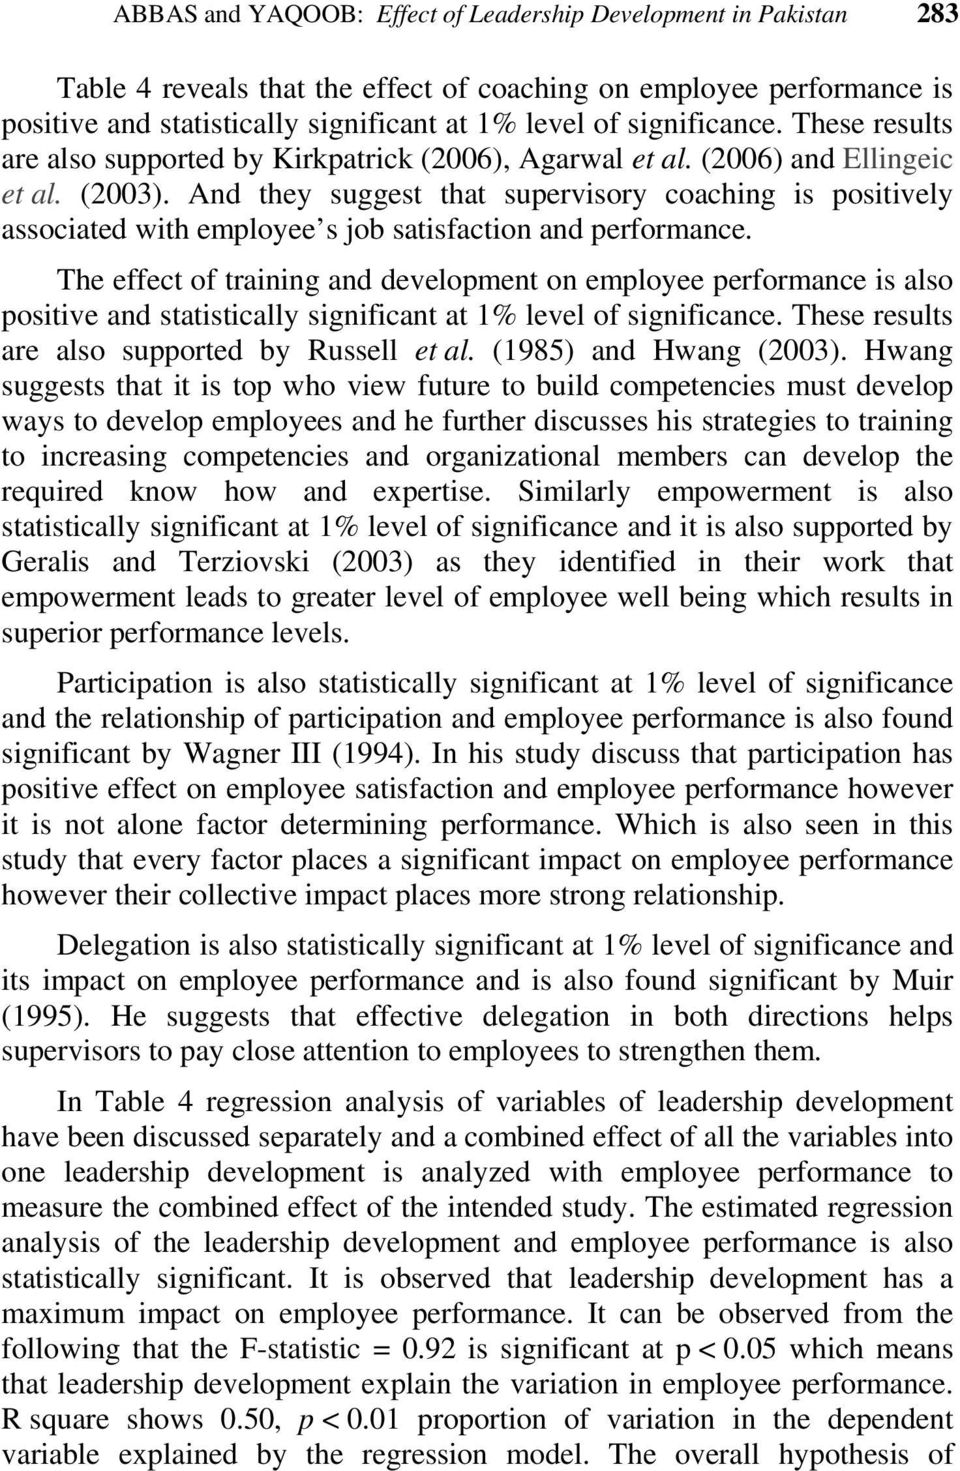 And they suggest that supervisory coaching is positively associated with employee s job satisfaction and performance.